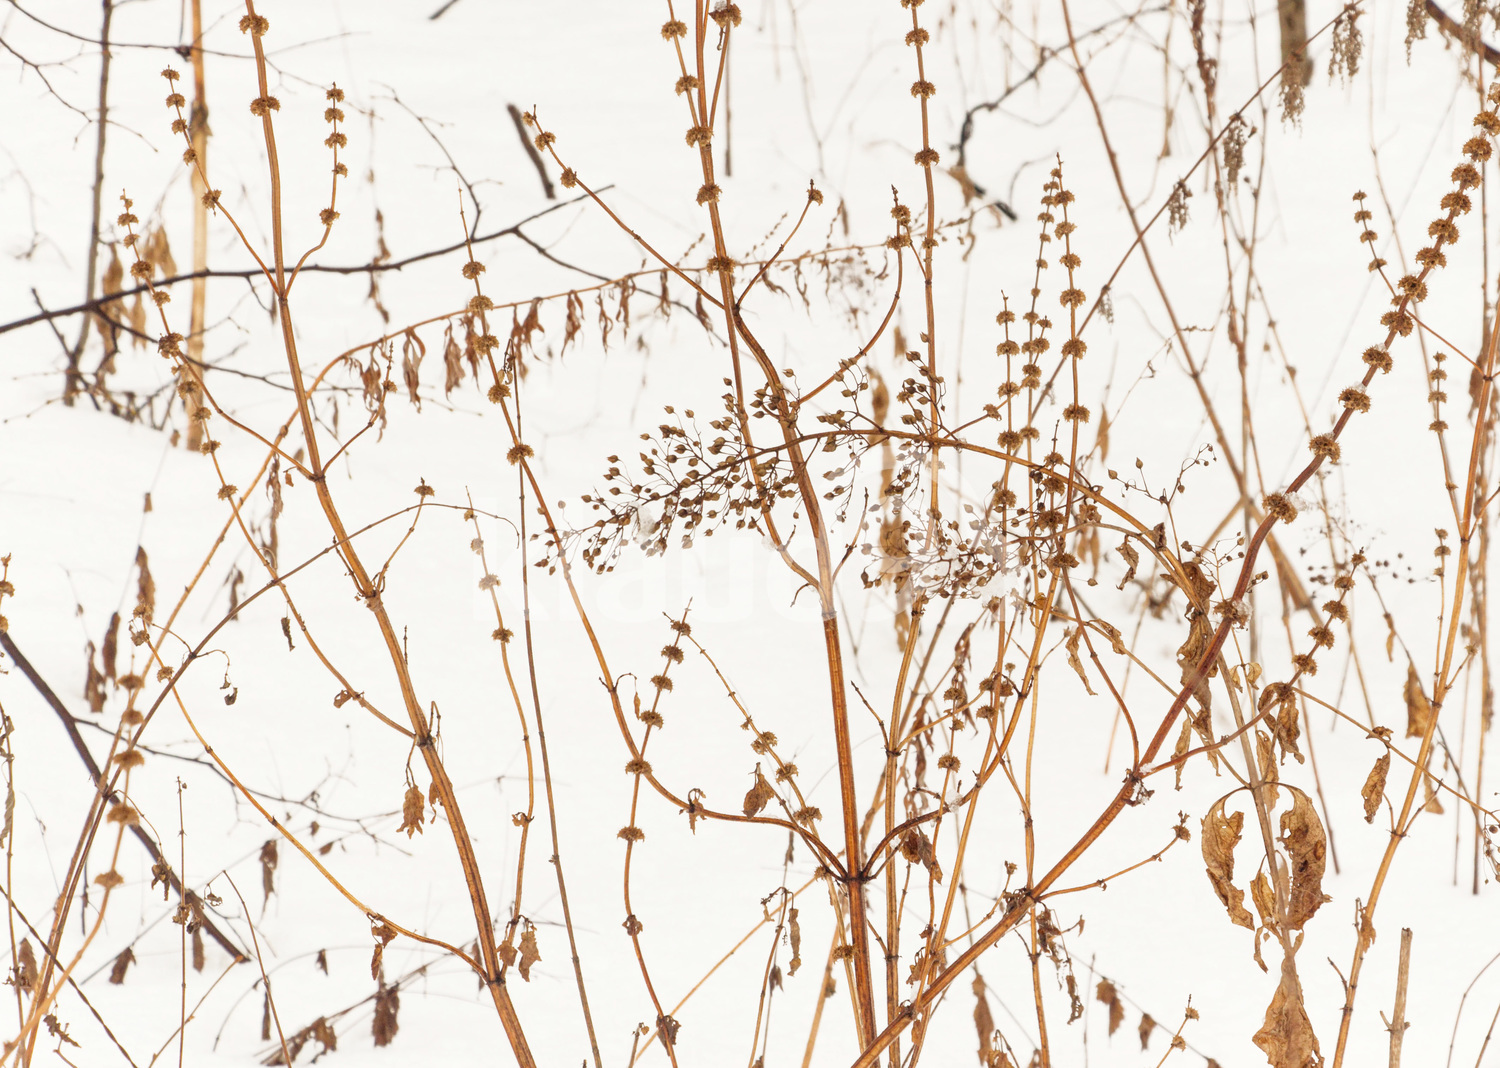 dry plant on the snow background